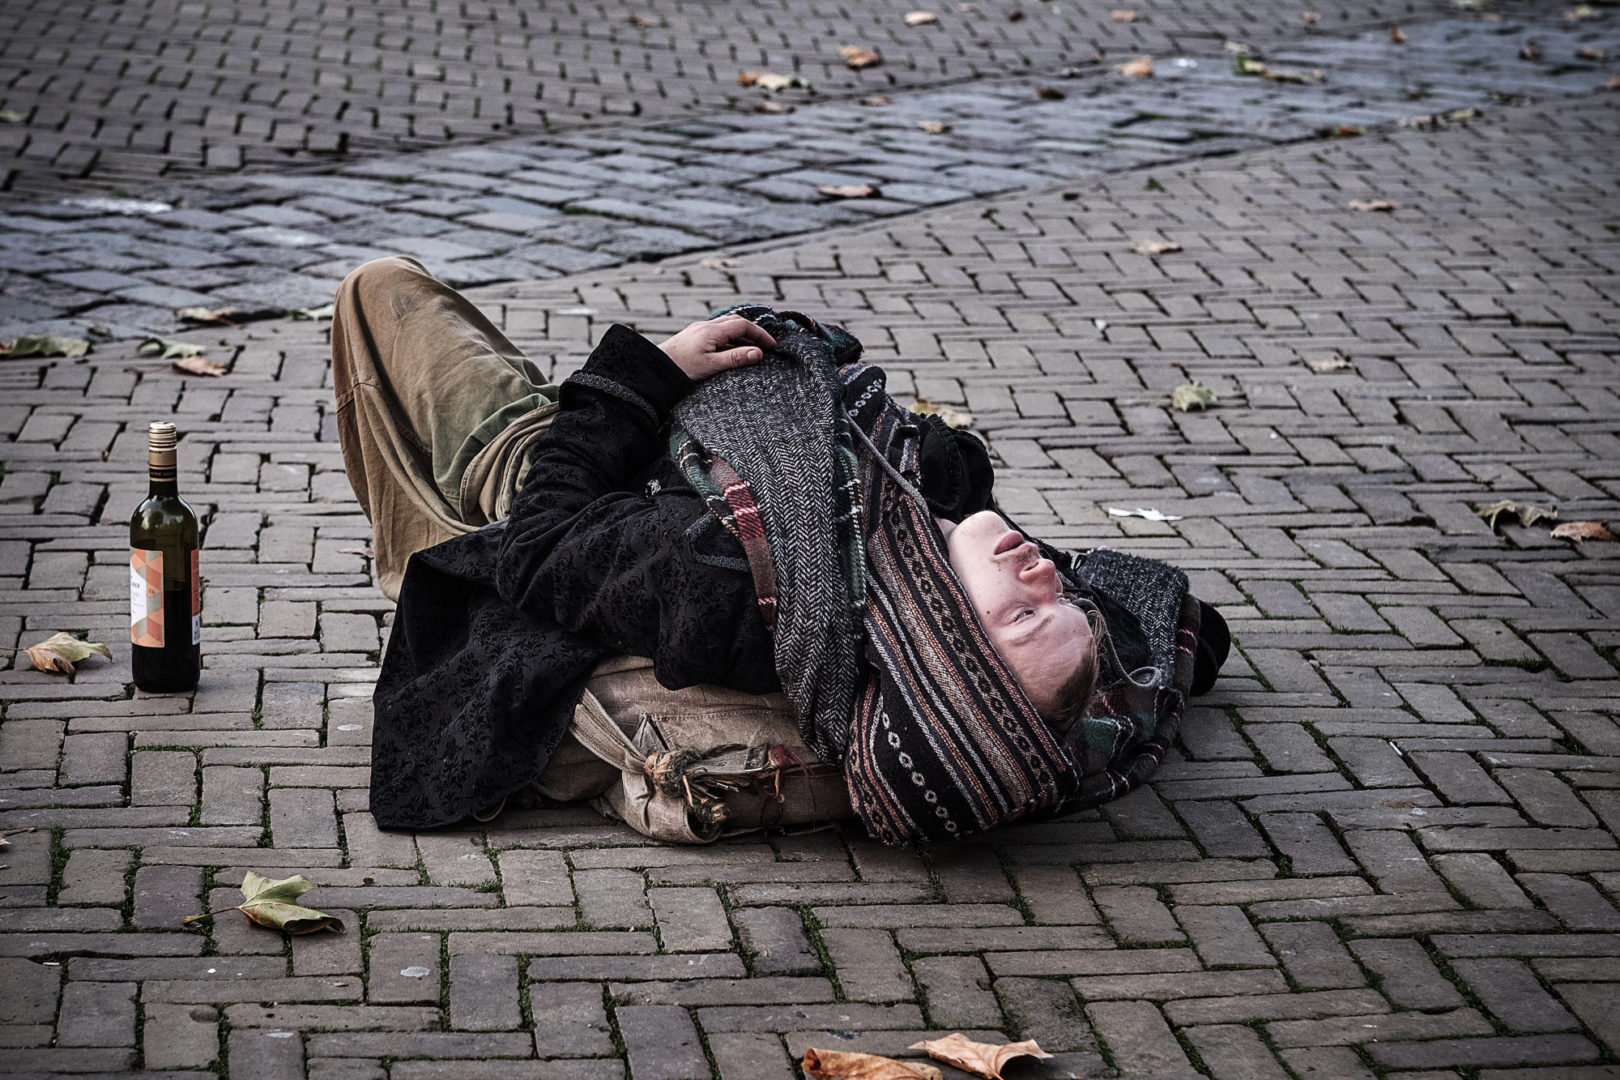 Photographer:  Daniel Patriasz   Country:  Netherlands  Title:  A bit too much